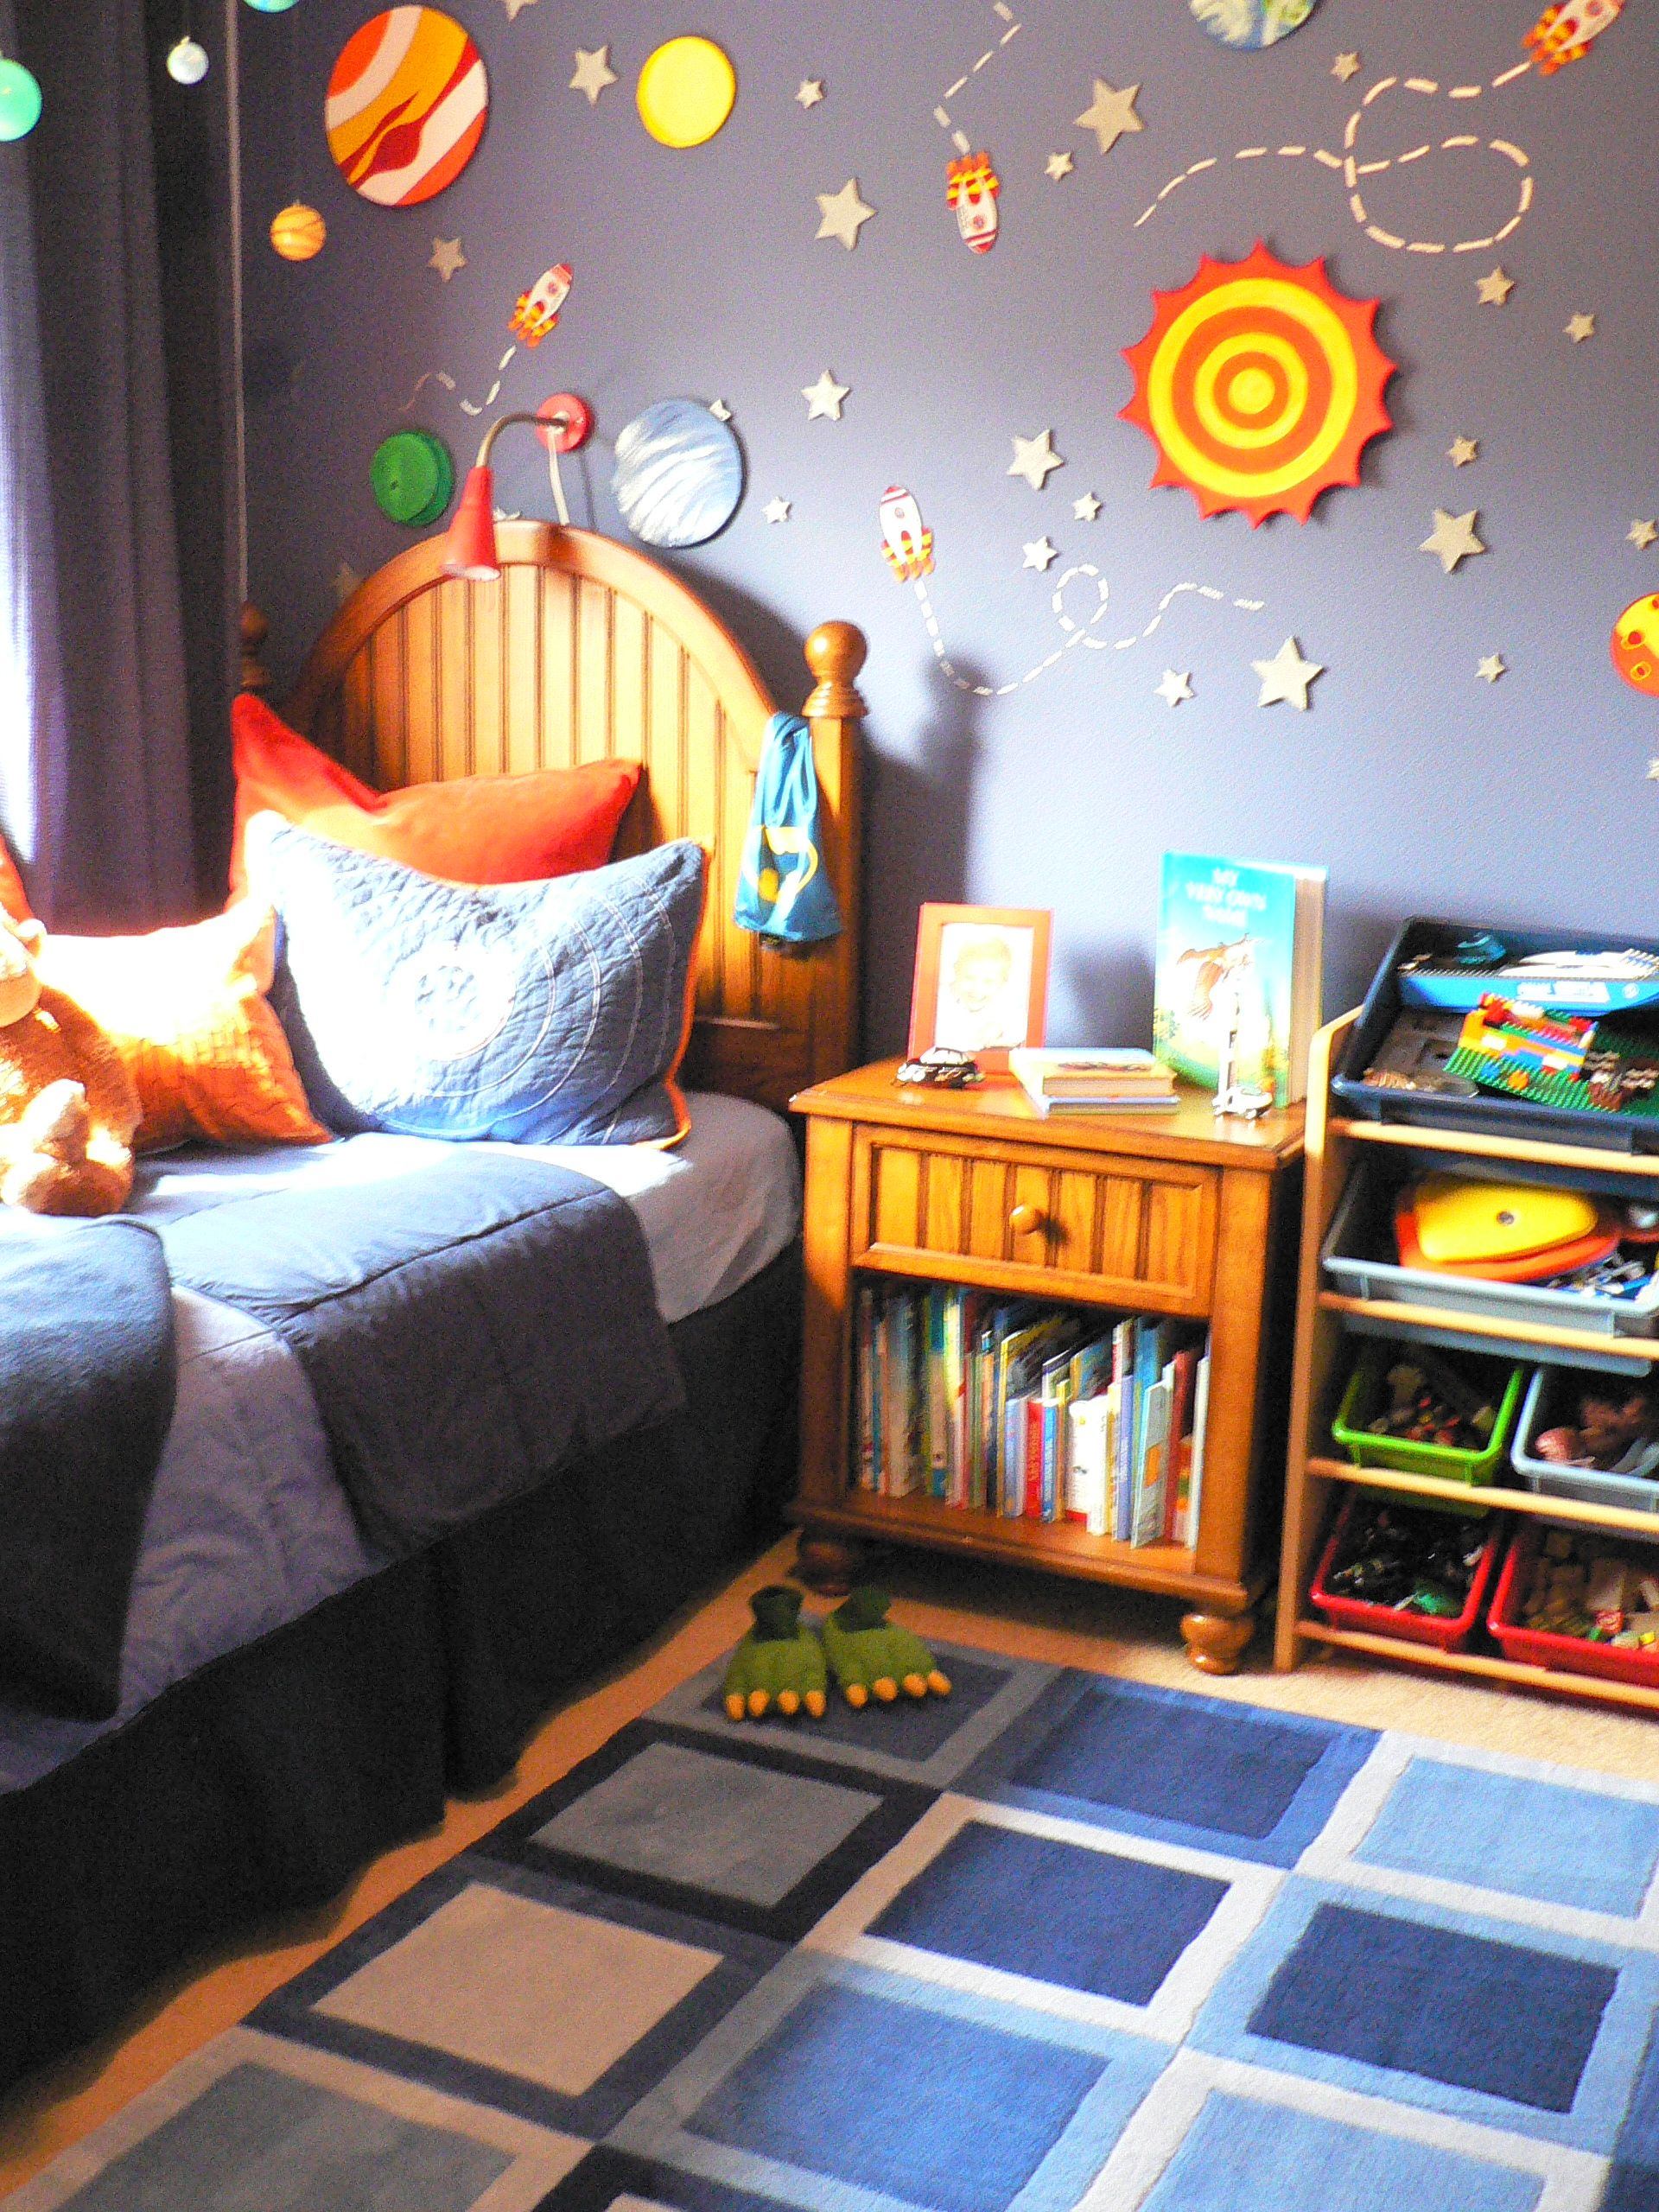 Toddler Boy Room Design: My Son's Crazy Space Room By Kari De Lavenne Design. Www